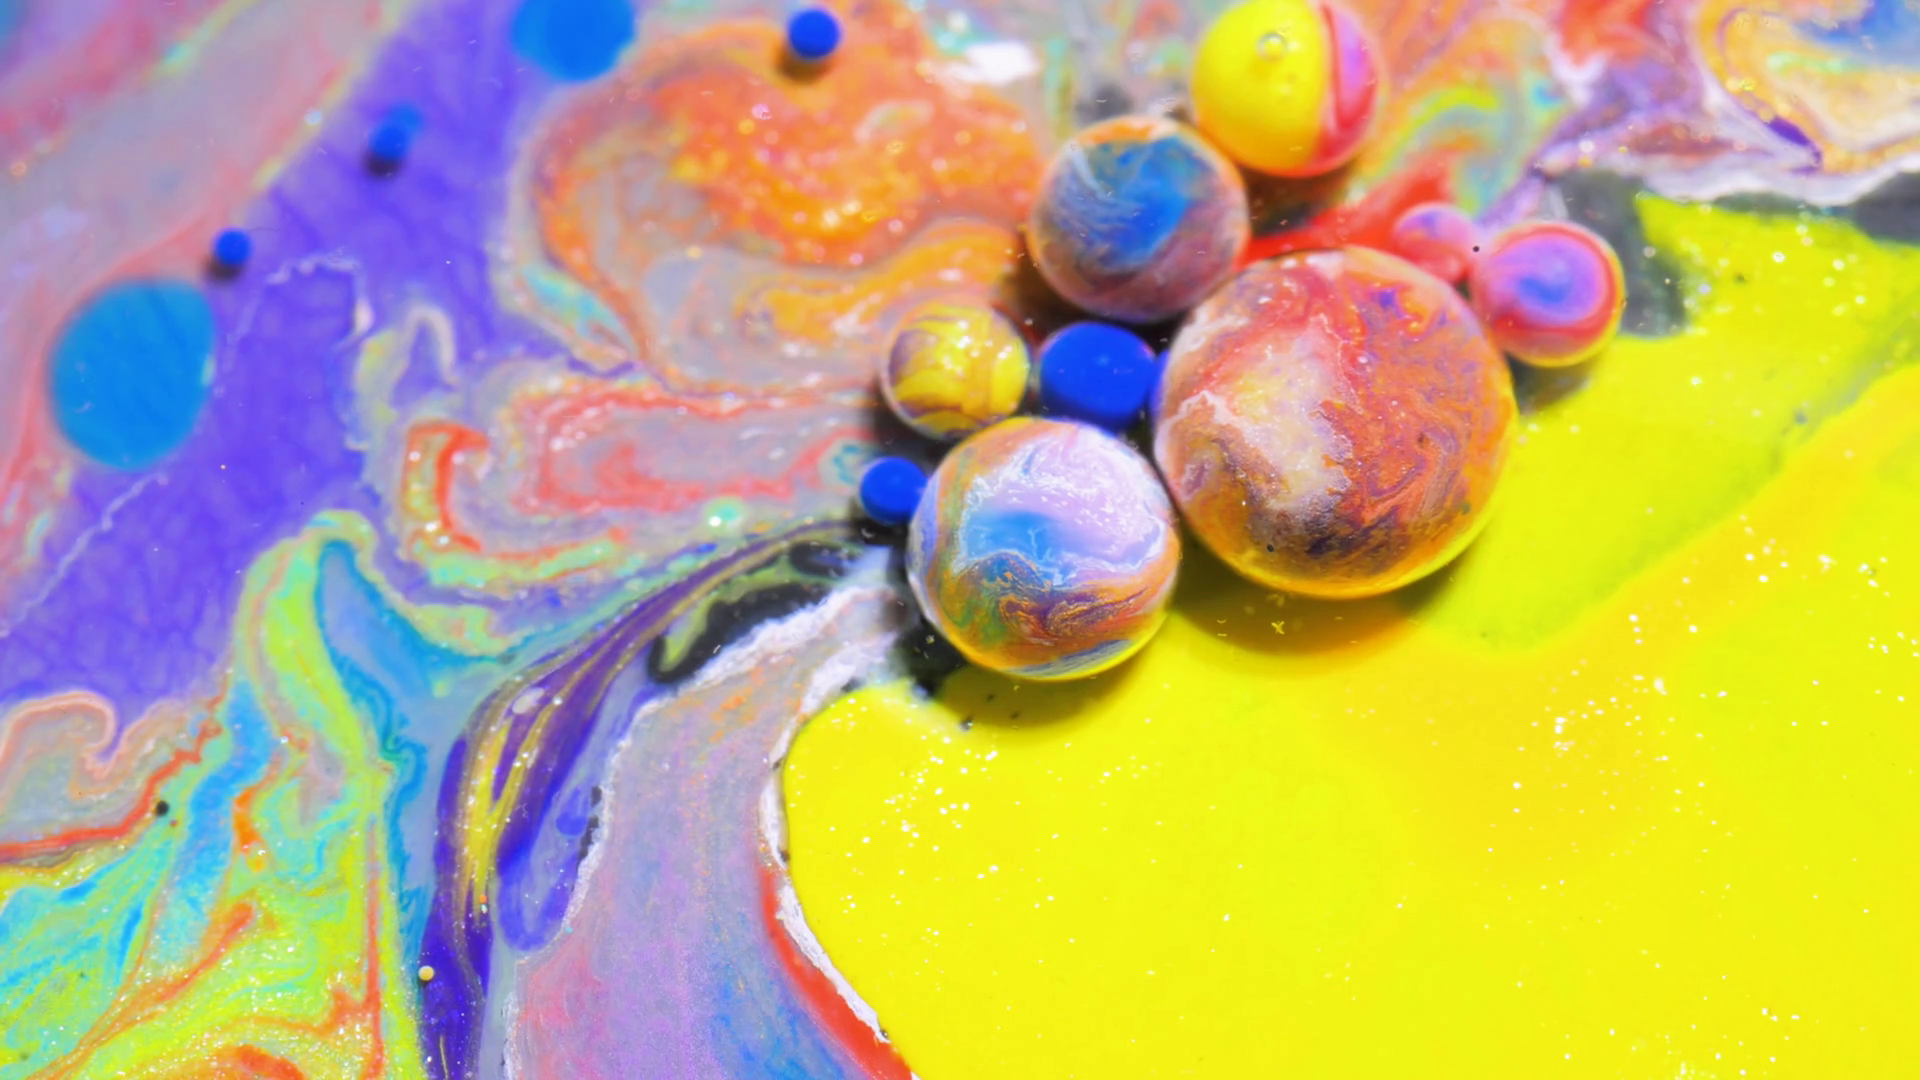 Liquid colors,yellow and red, mix underwater into orange. Bubbles ...